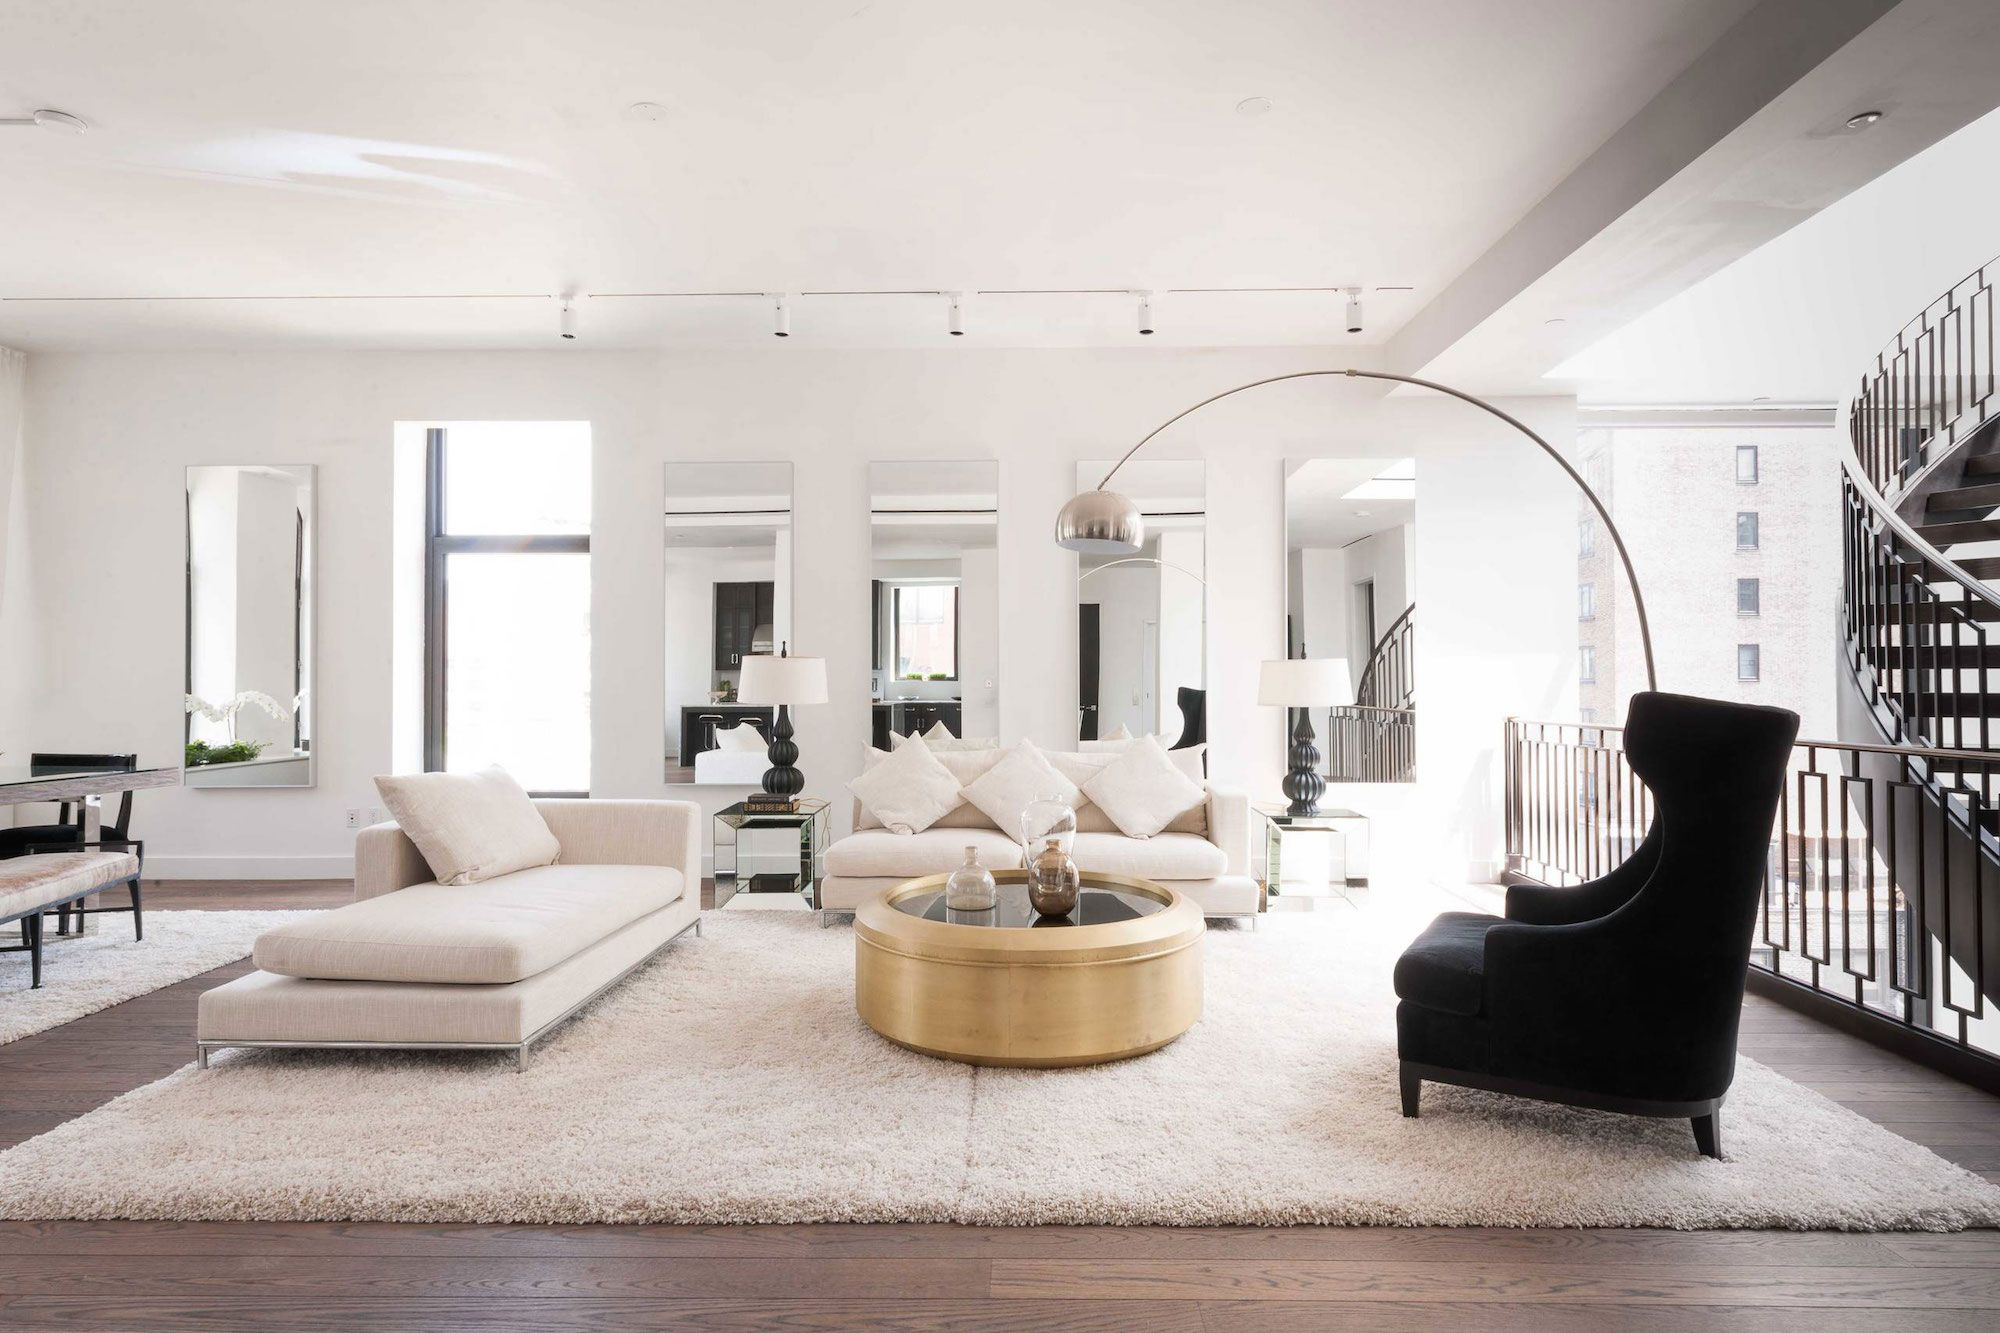 66 East Eleventh Street Penthouse in New York by Delos